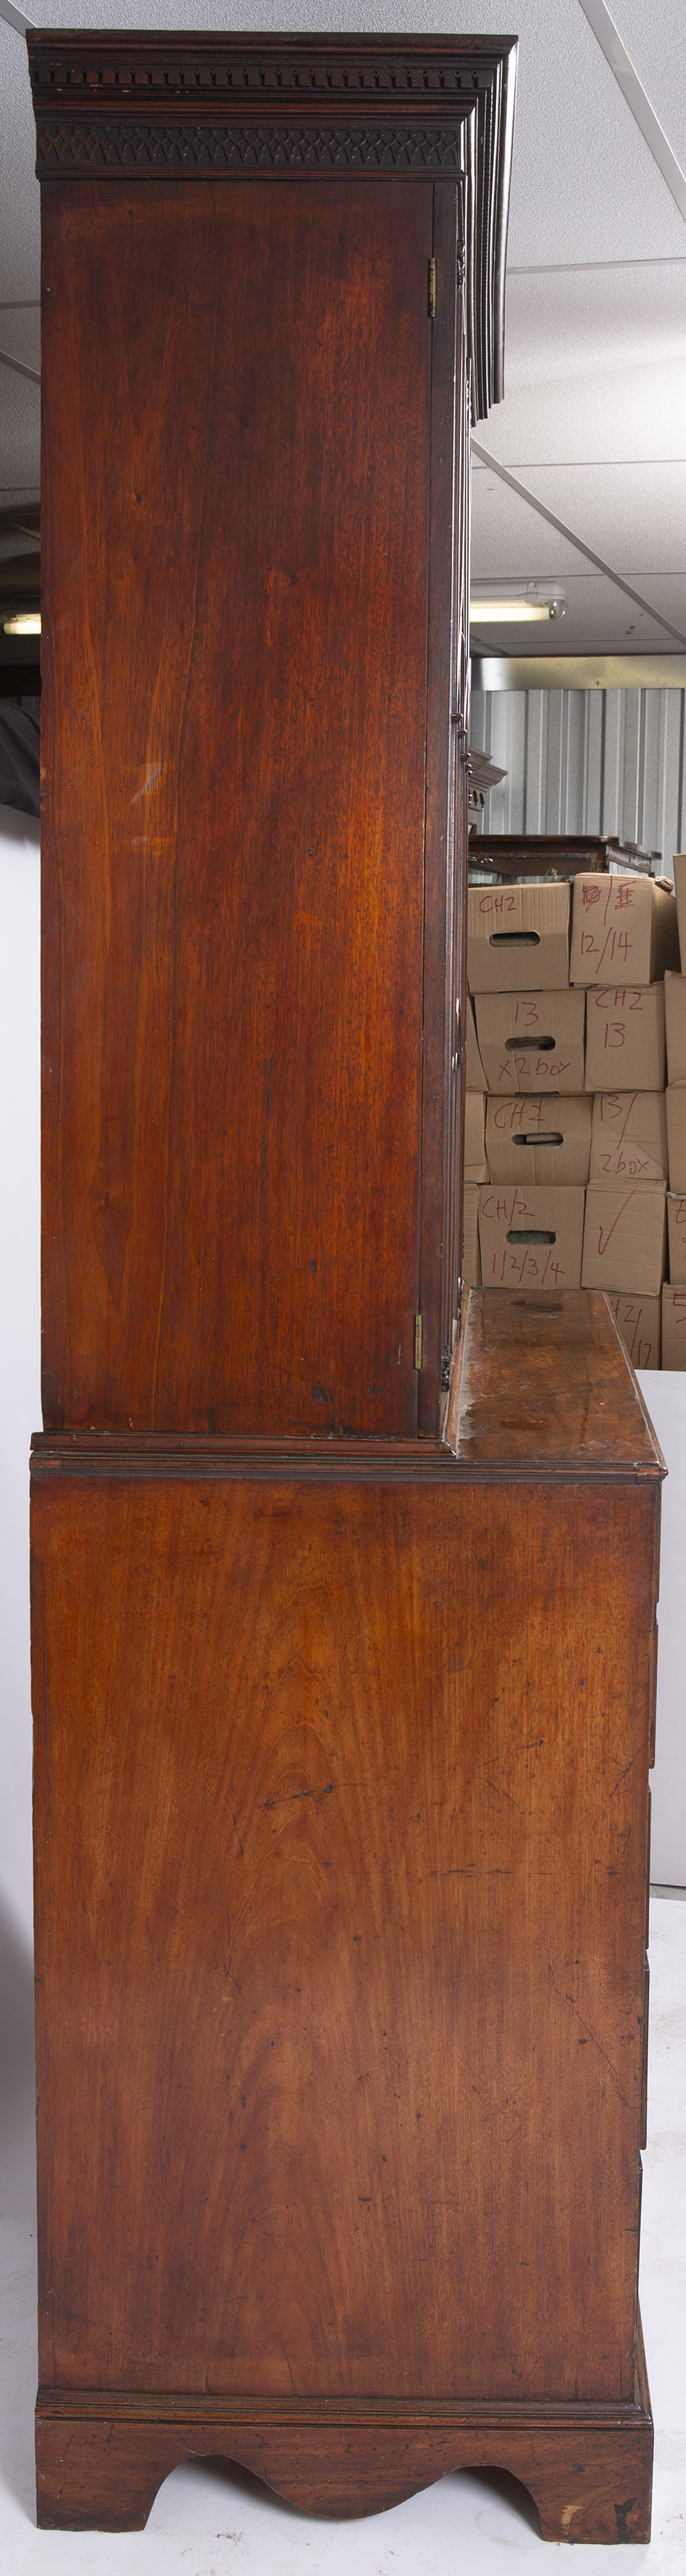 A GEORGE III MAHOGANY SECRETAIRE BOOKCASE, the upper part with a dentil moulded cornice above - Image 3 of 5